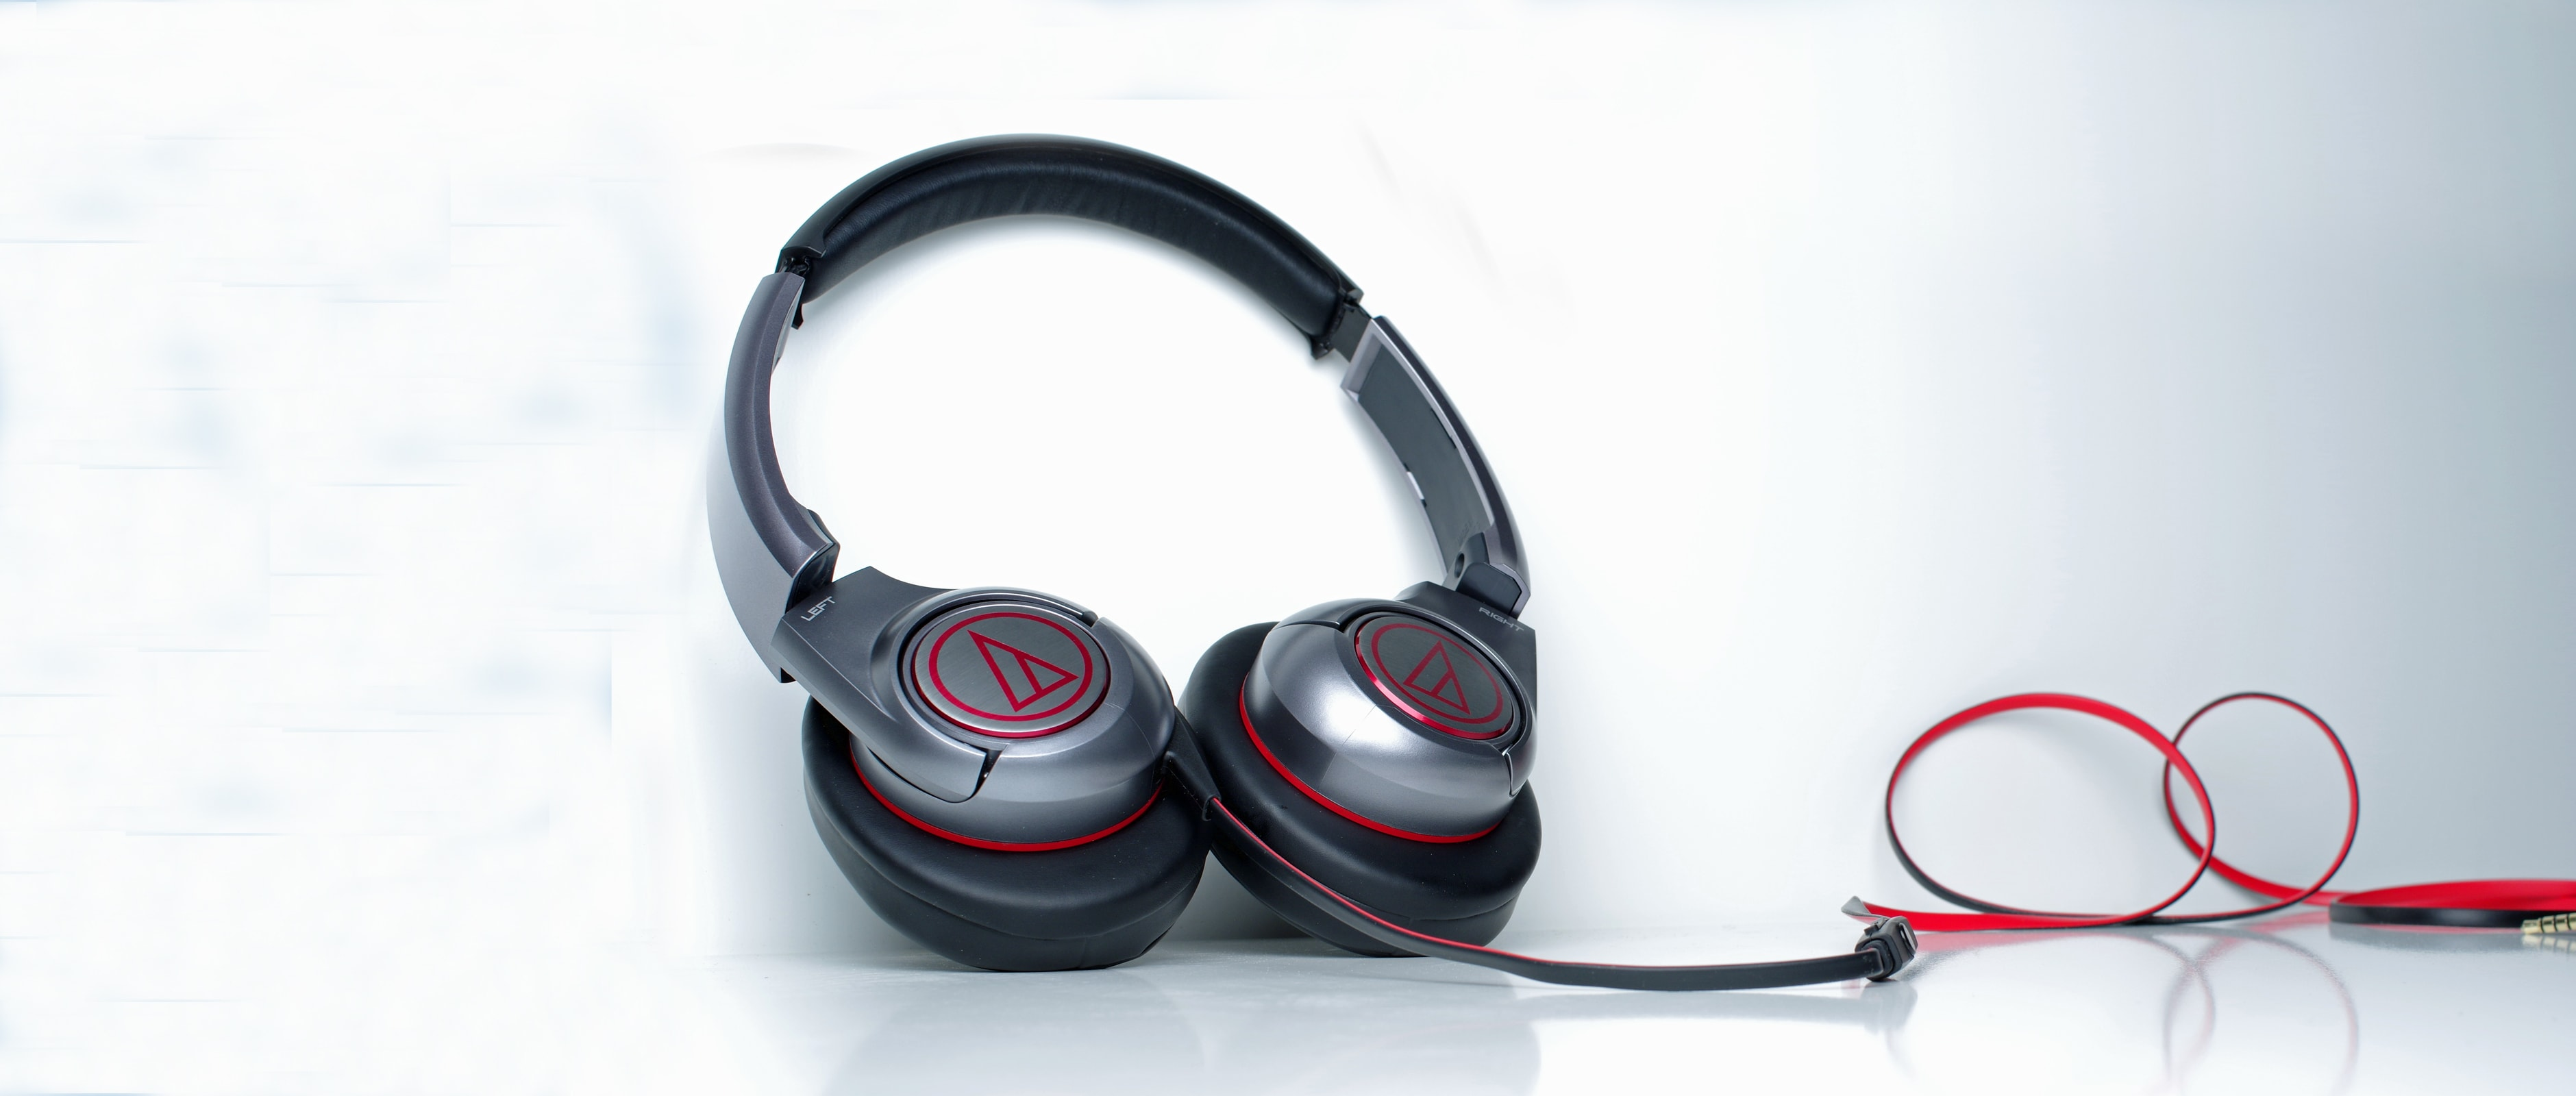 The Audio-Technica ATH-AX5iS over-ears are what you'd expect from an entry level model: below average.